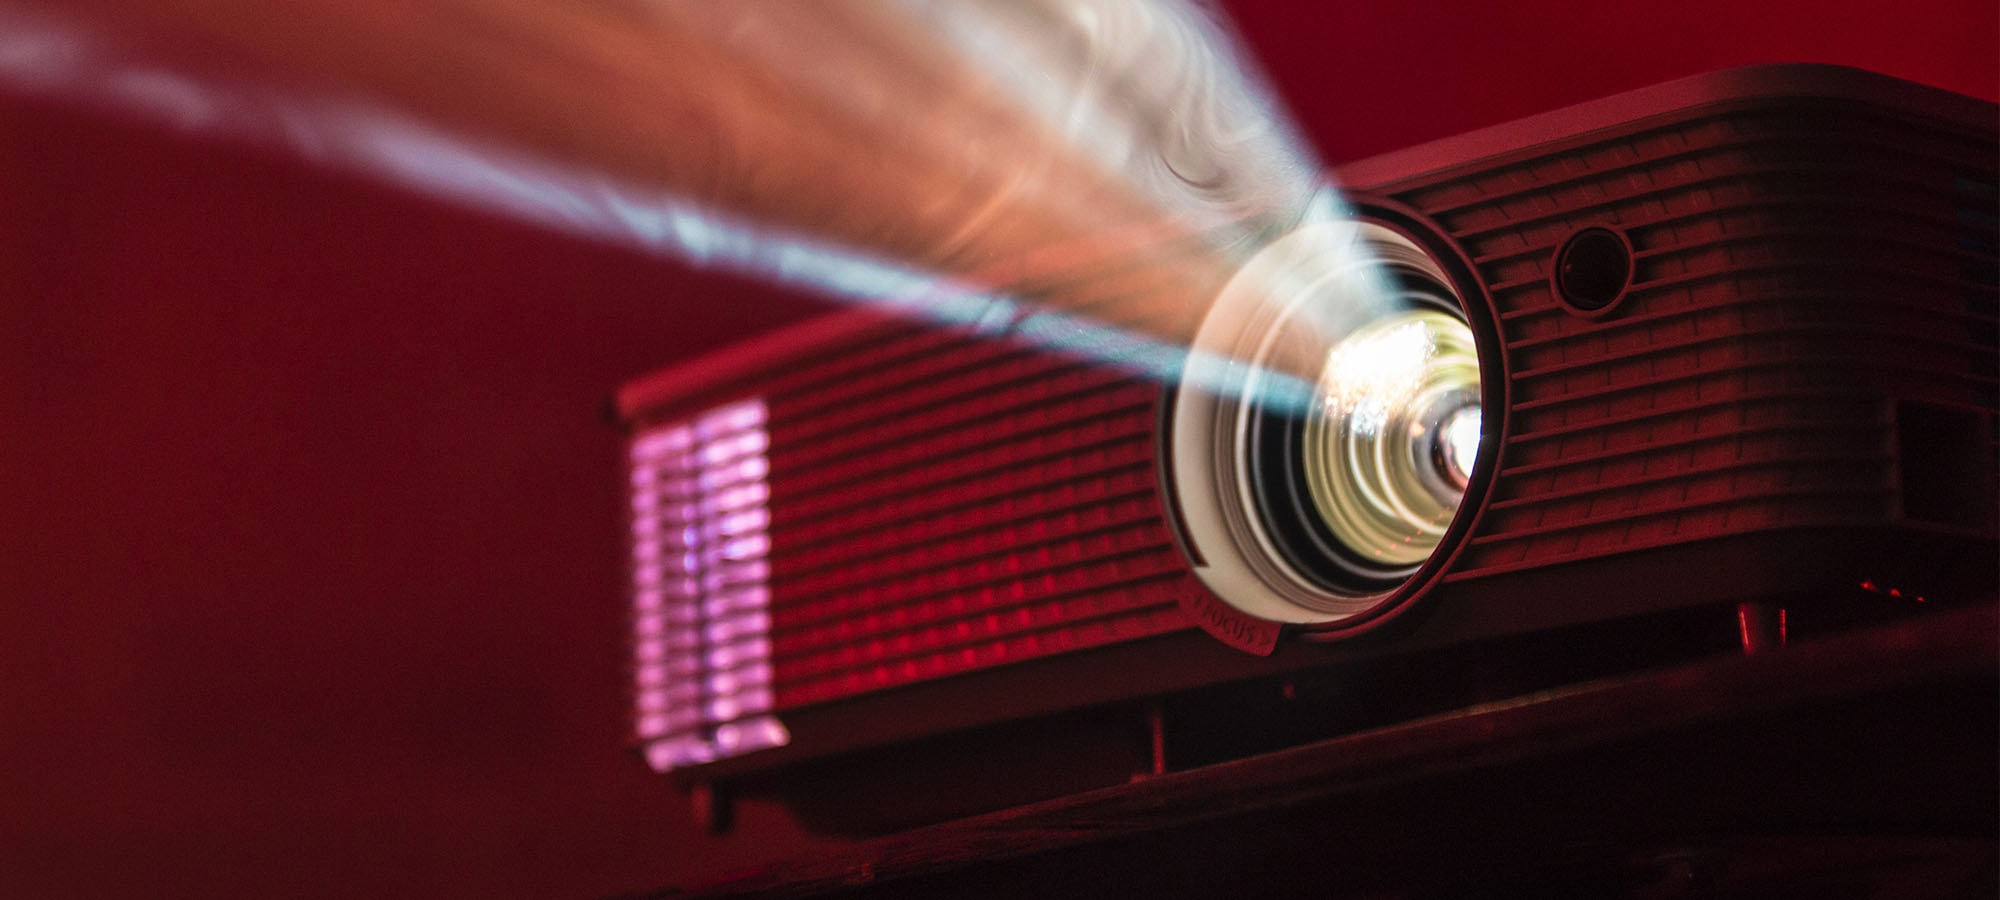 What to Know When Looking for a Home Theater Projector